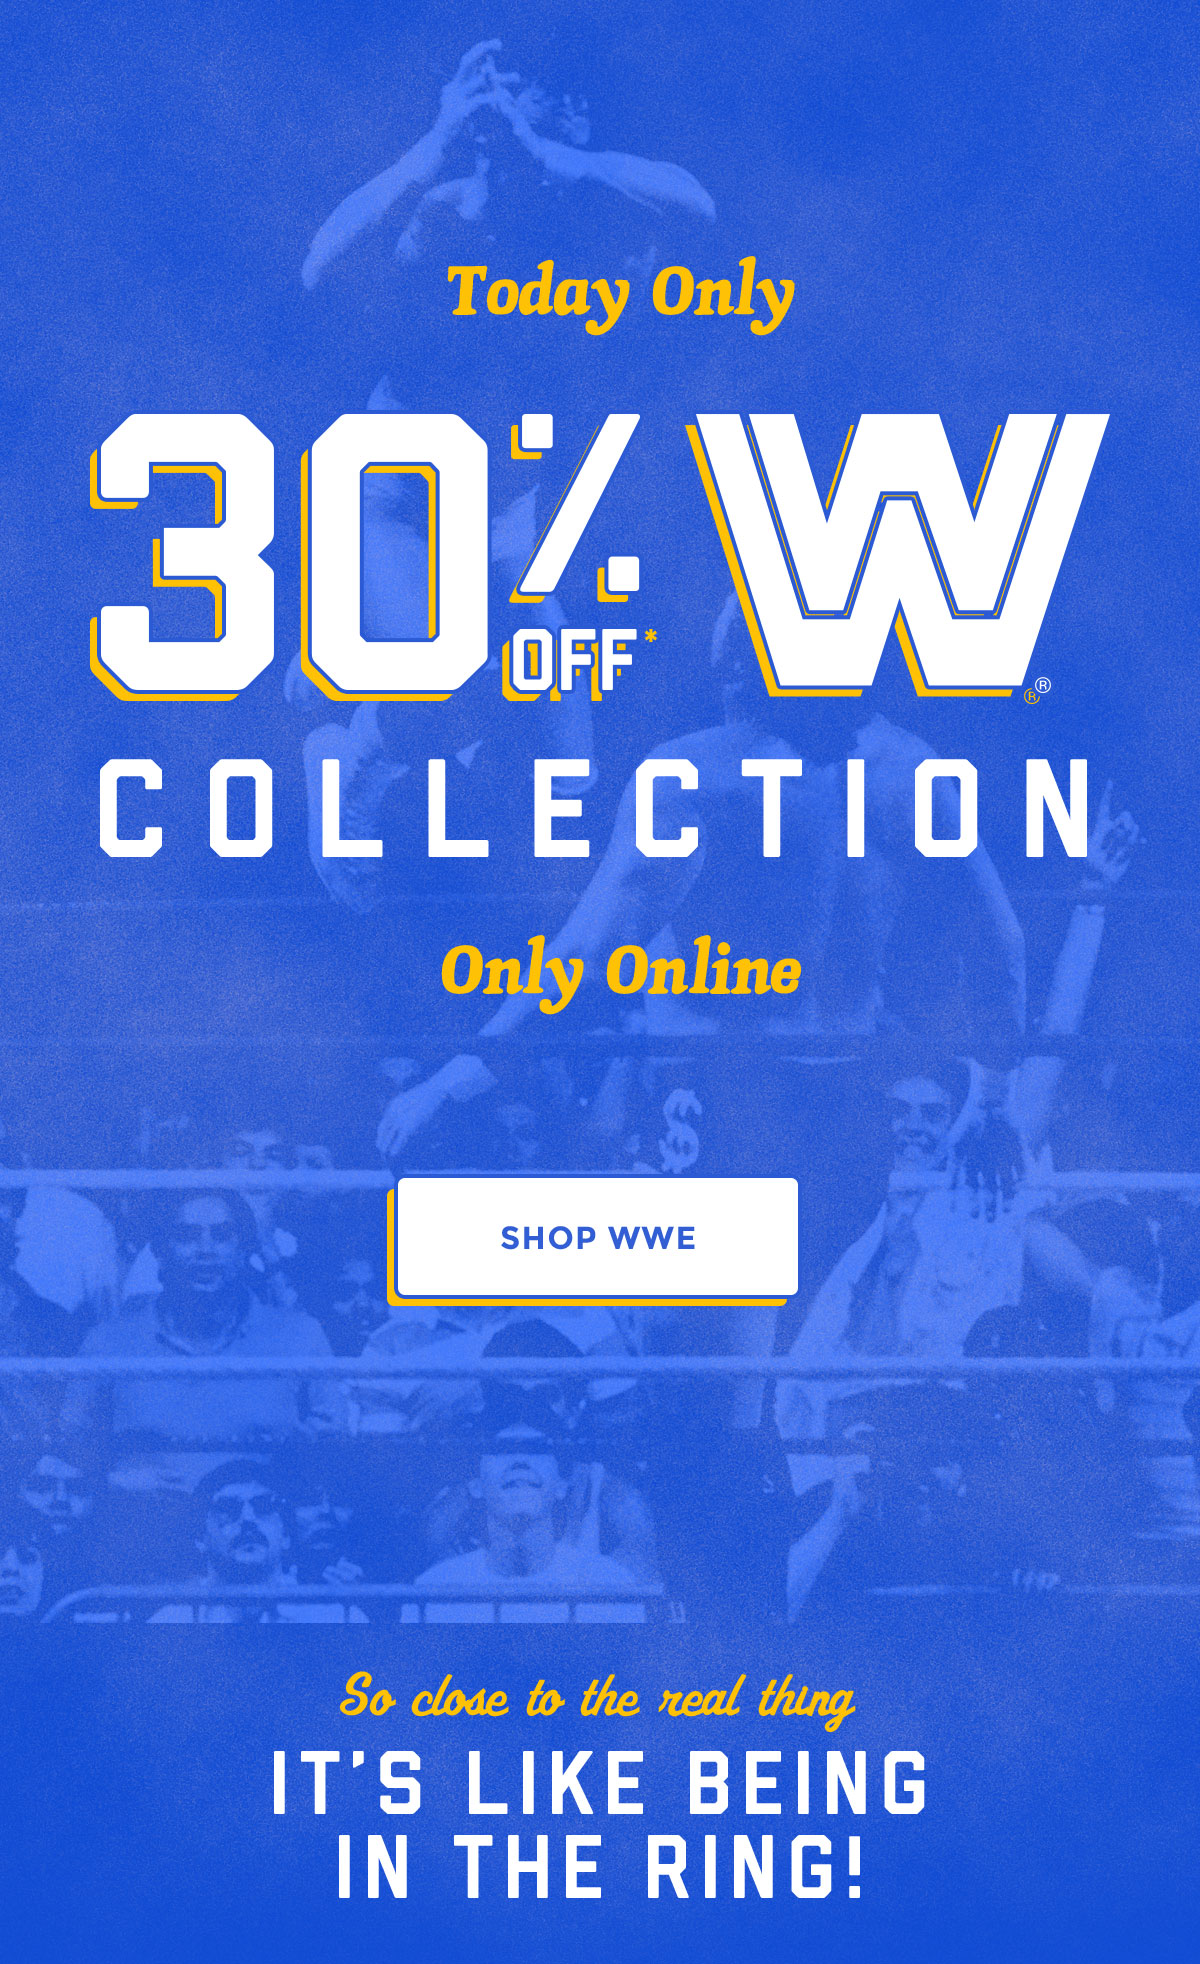 Today Only | 30% off WWE Collection